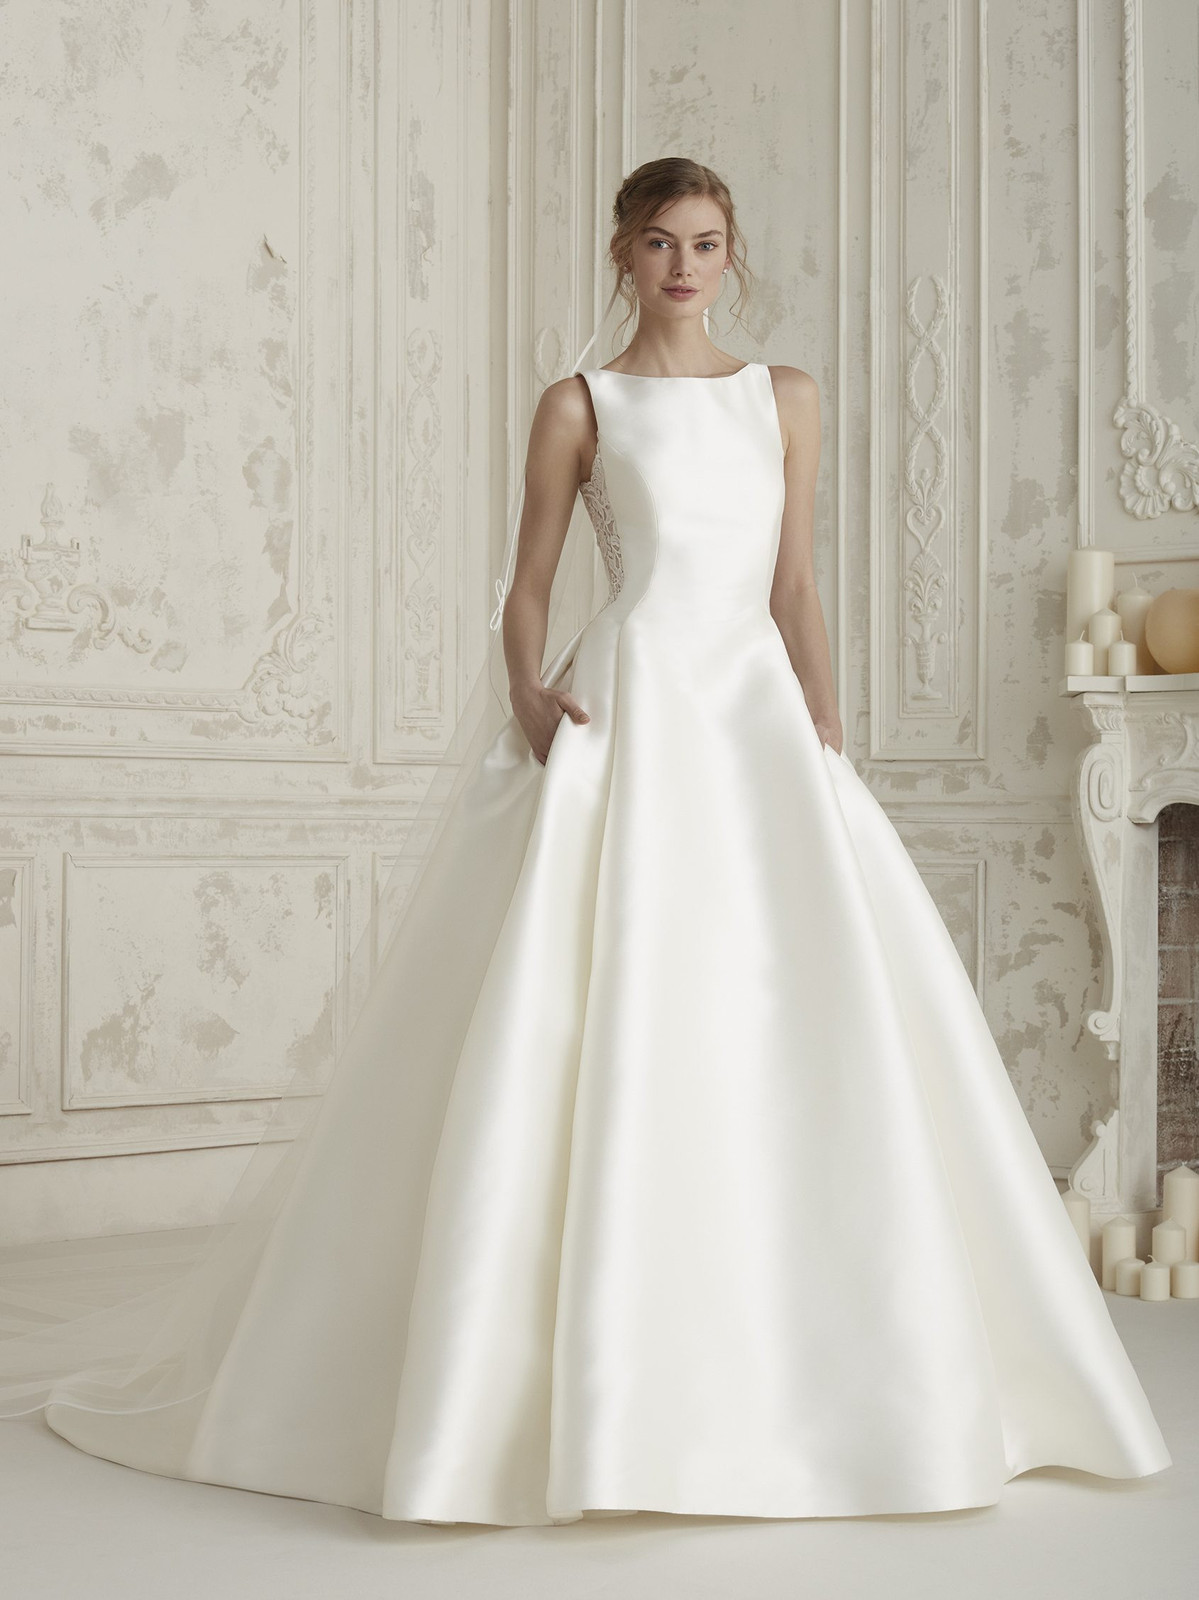 0c52f9875740 Spectacular and elegant princess dress with a natural waist. A design with  plenty of volume, crafted in mikado, with lateral folds and pockets.